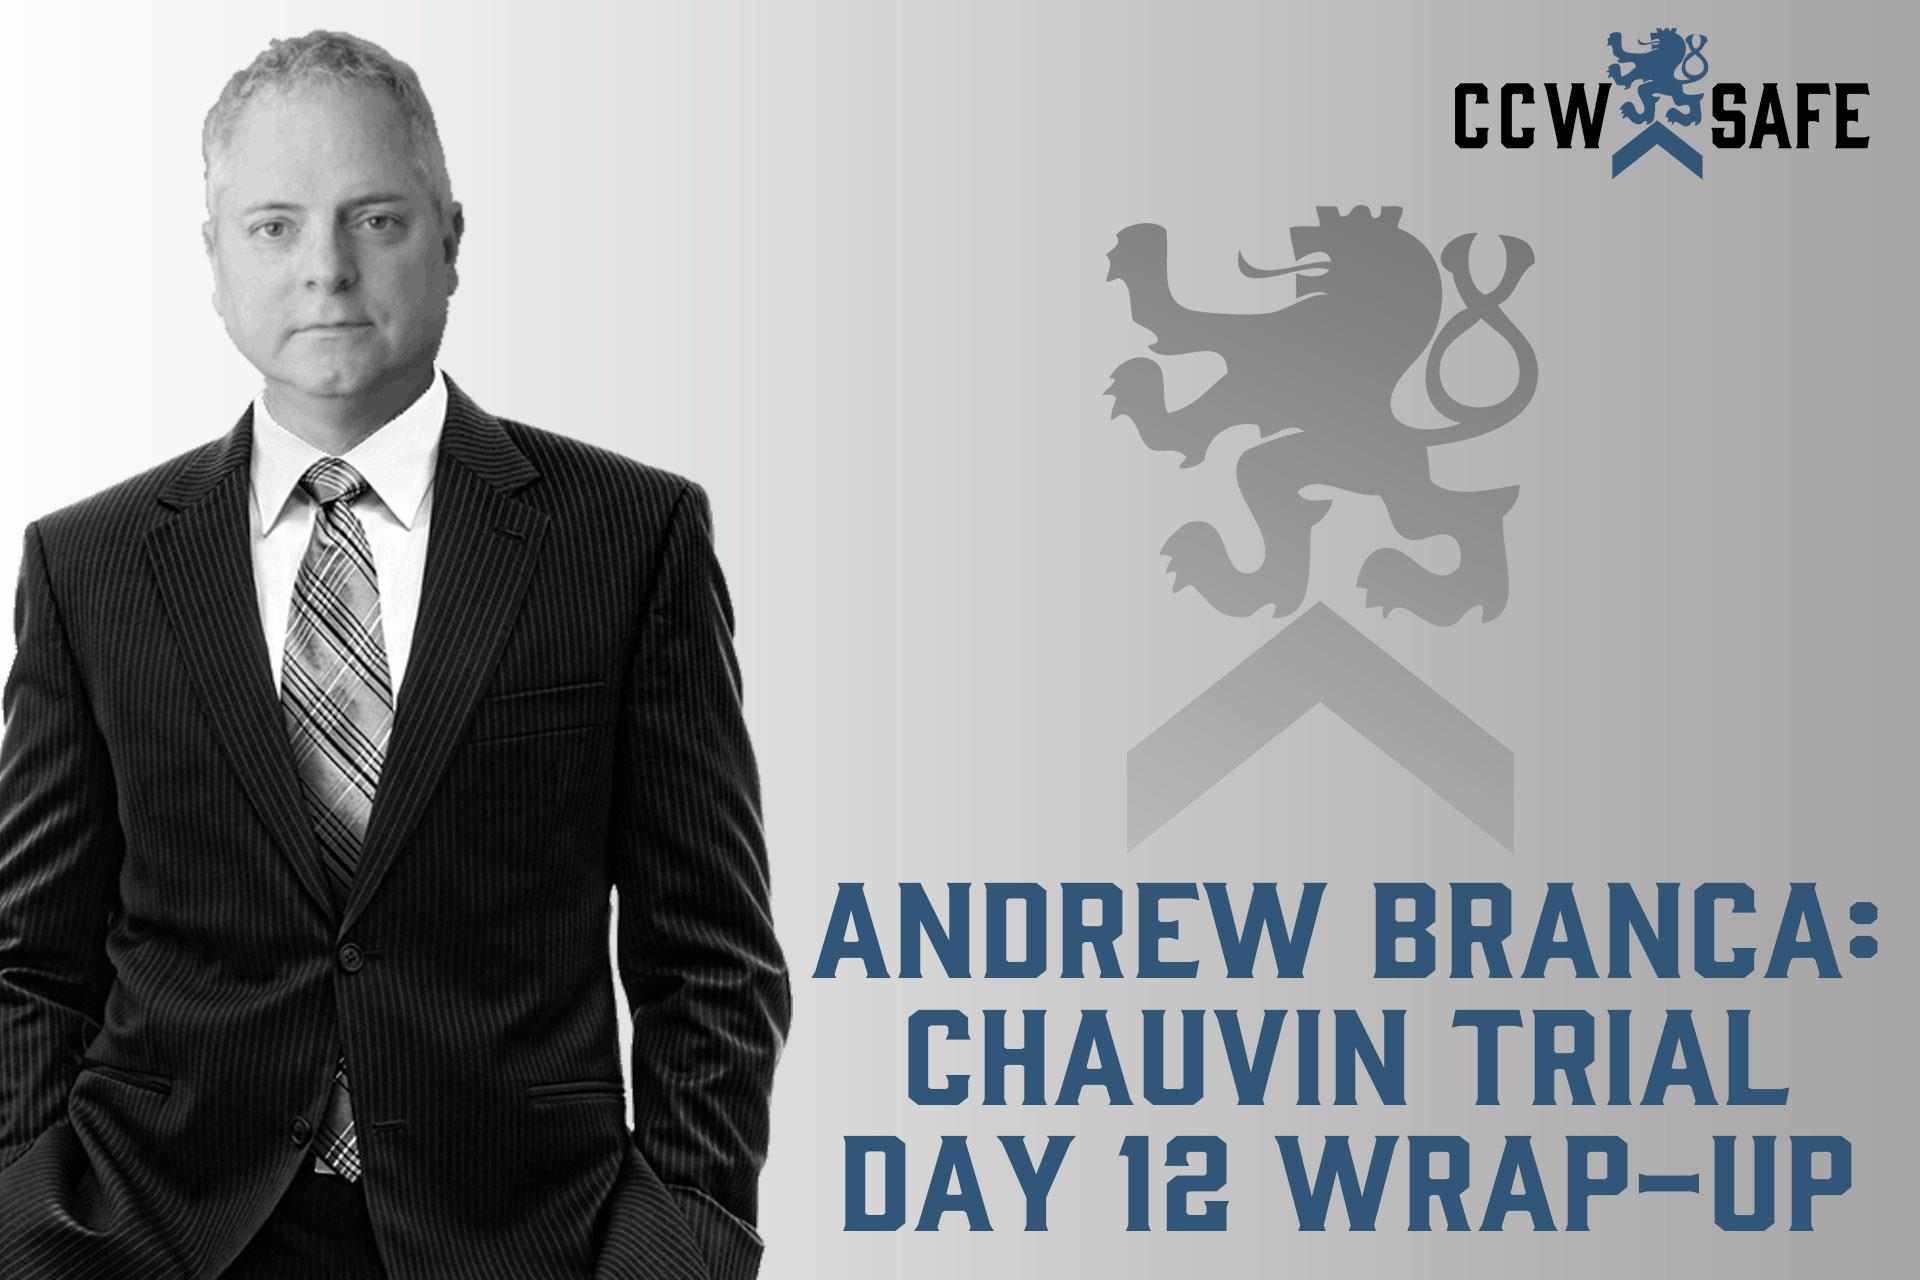 Andrew Branca: Chauvin Trial Day 12 Wrap-Up